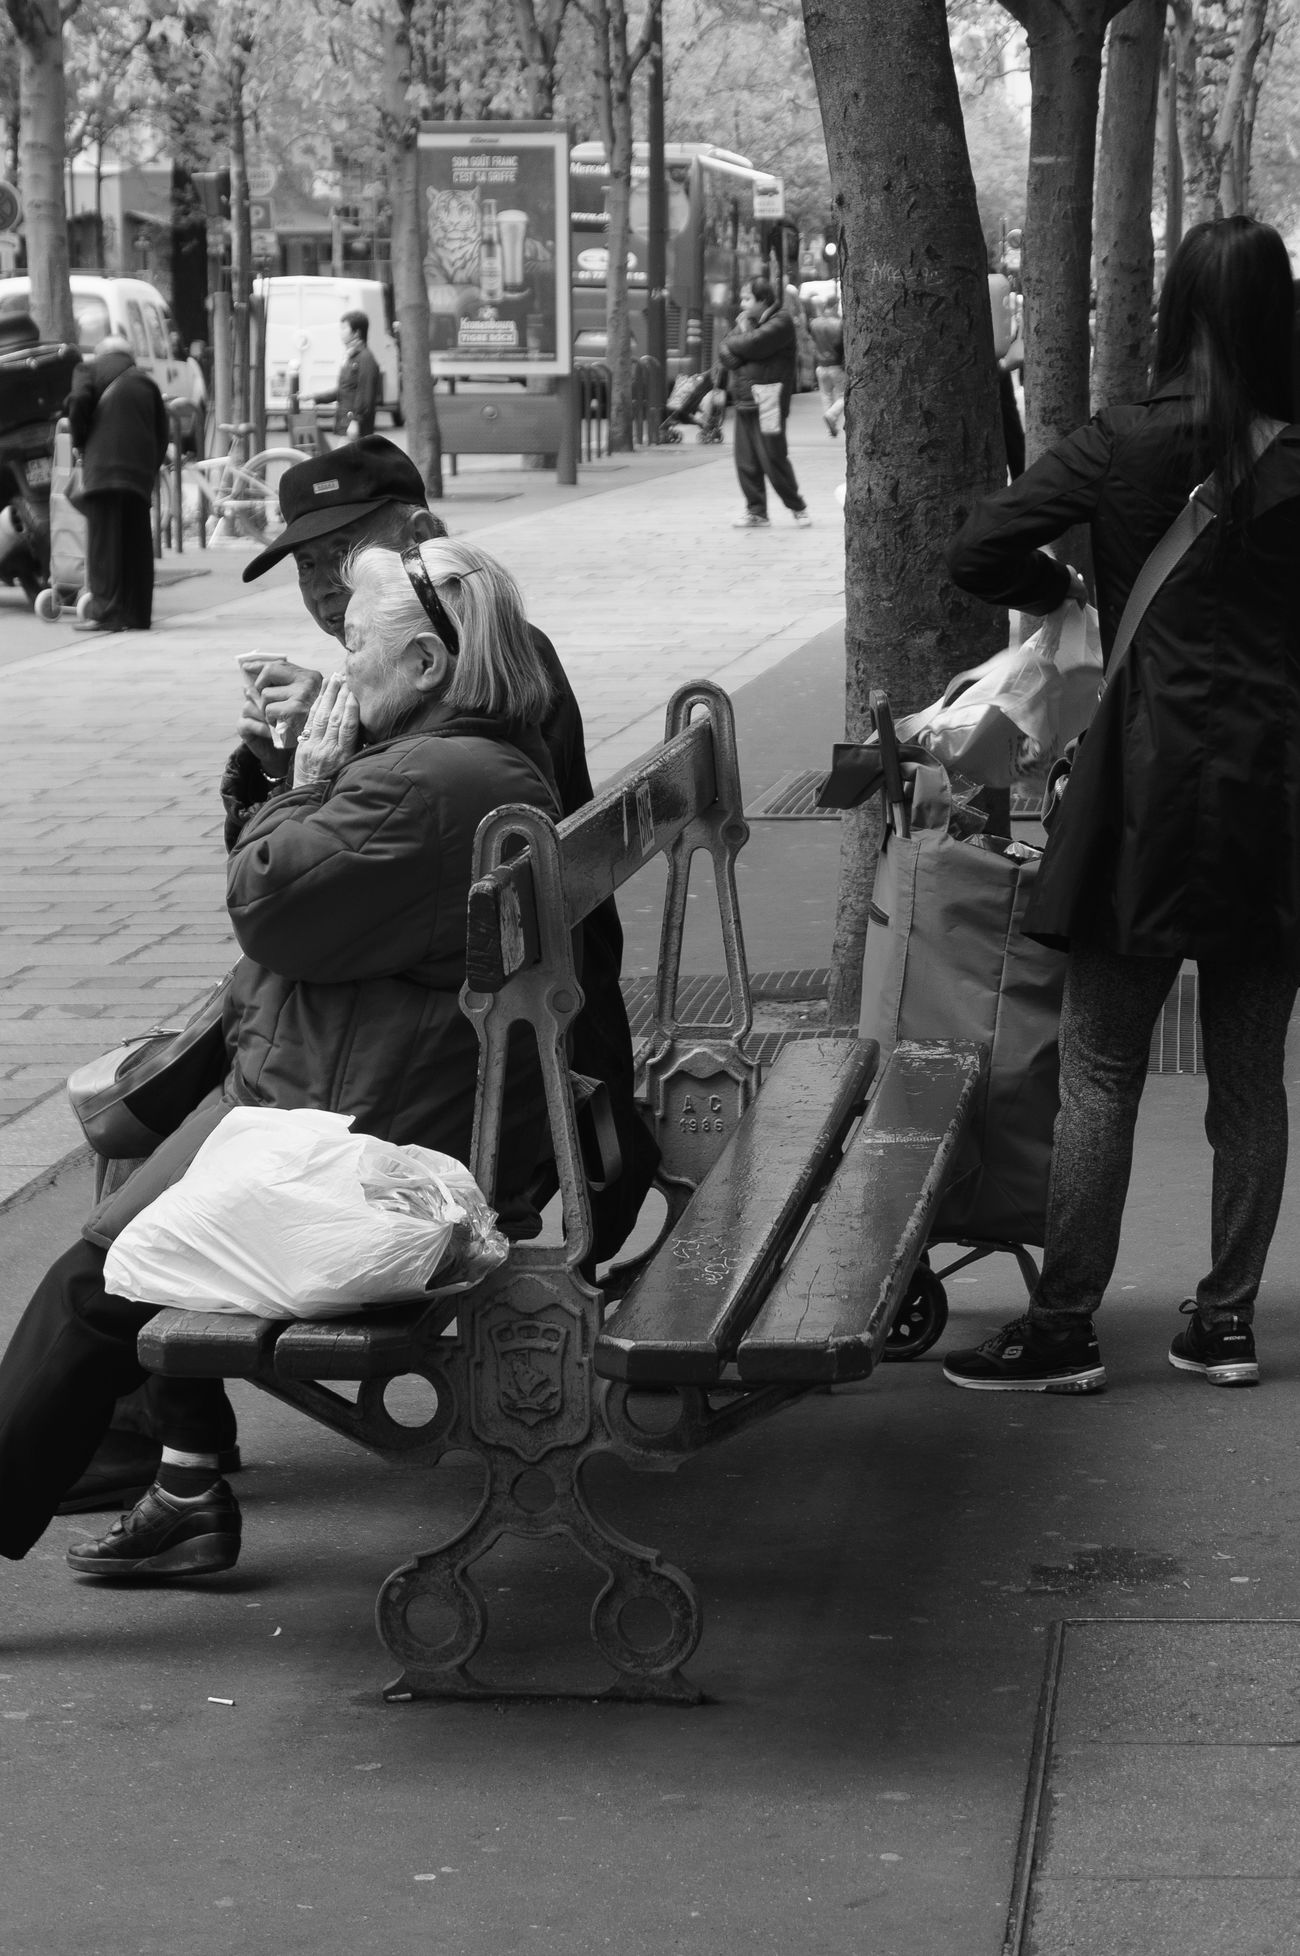 Black And White Black And White Collection! City Life Monochrome QuartierChinois Street Photography